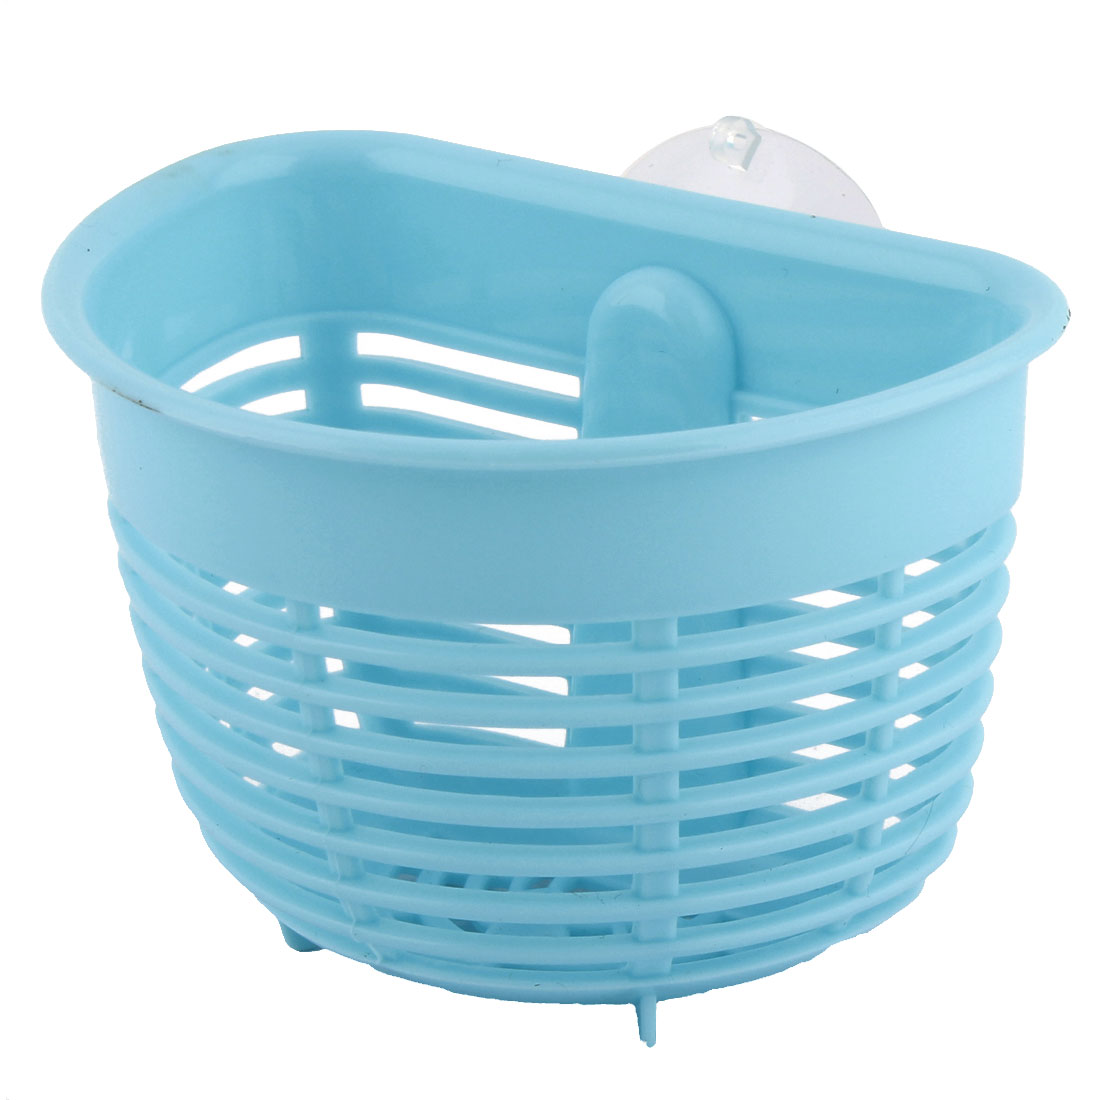 Kitchen Bathroom Plastic Soap Tableware Small Items Drain Storage Basket Light Blue